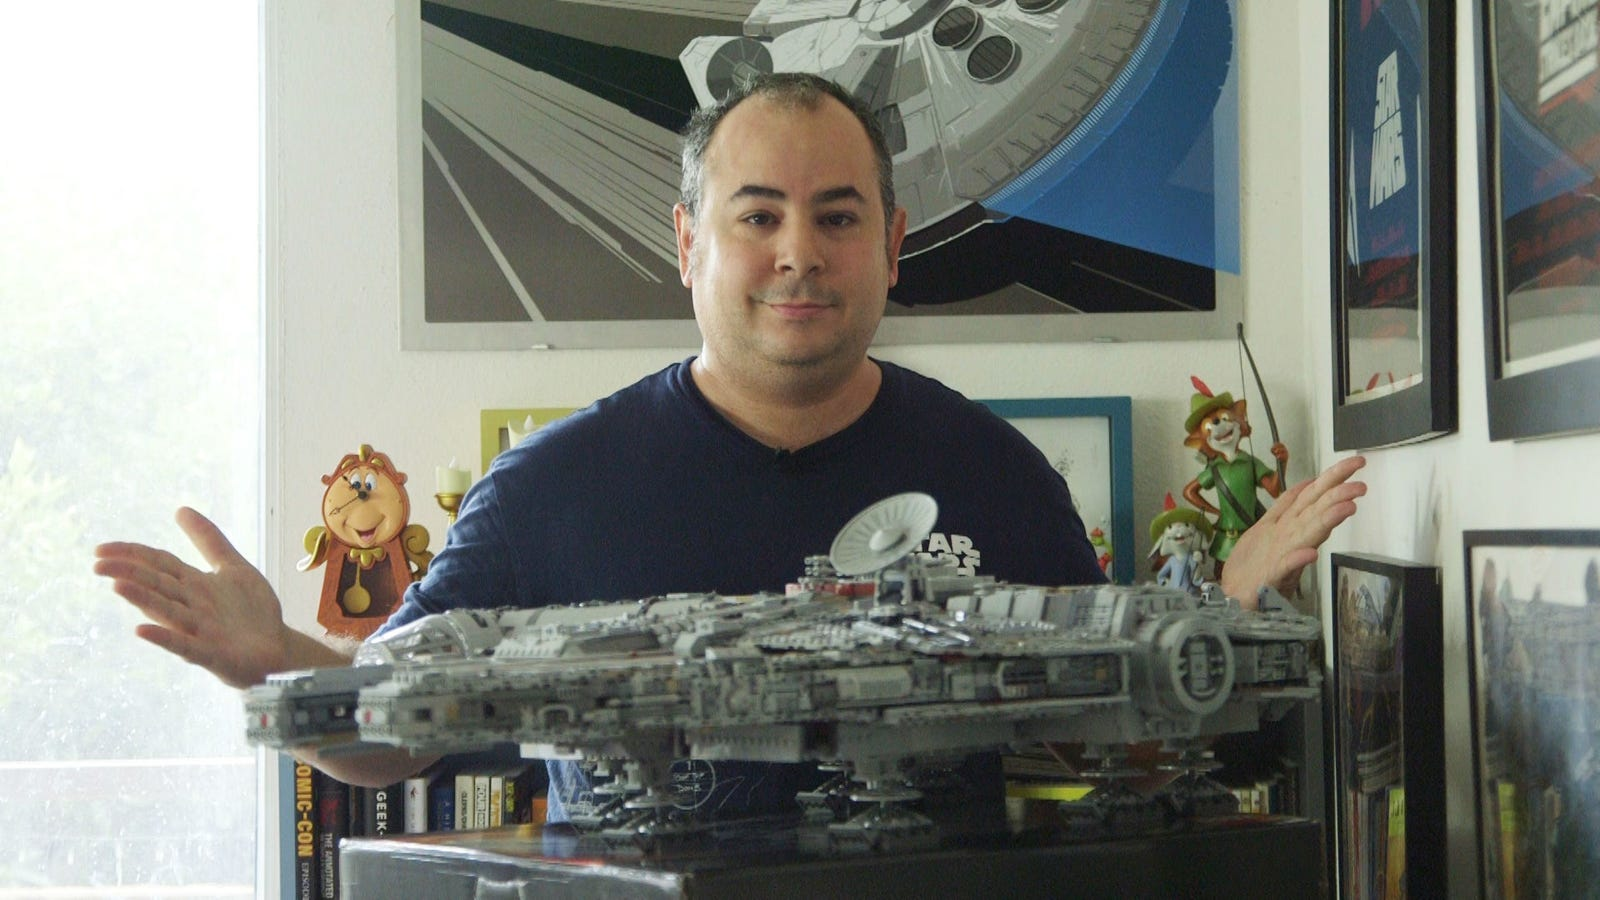 Watch Me Build Lego's Massive 7,500-Piece Millennium Falcon